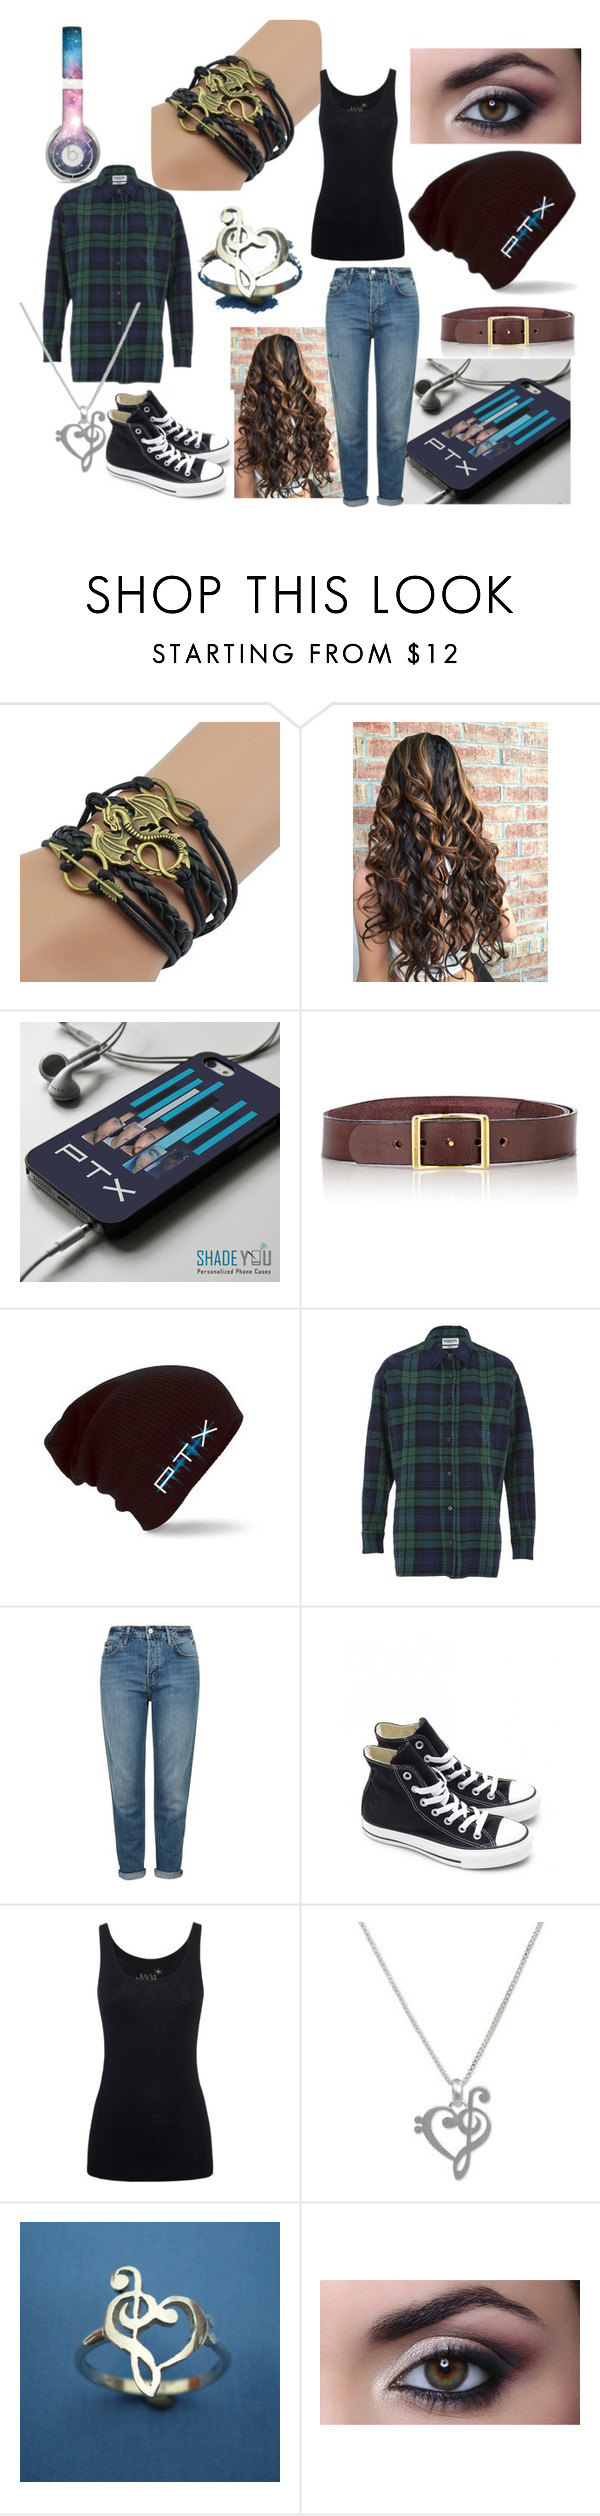 Female Avi Kaplan outfit by mysterious-archer on Polyvore featuring Essentiel, Juvia, Topshop, Converse, NOVICA, C.S. Simko and Beats by Dr. Dre